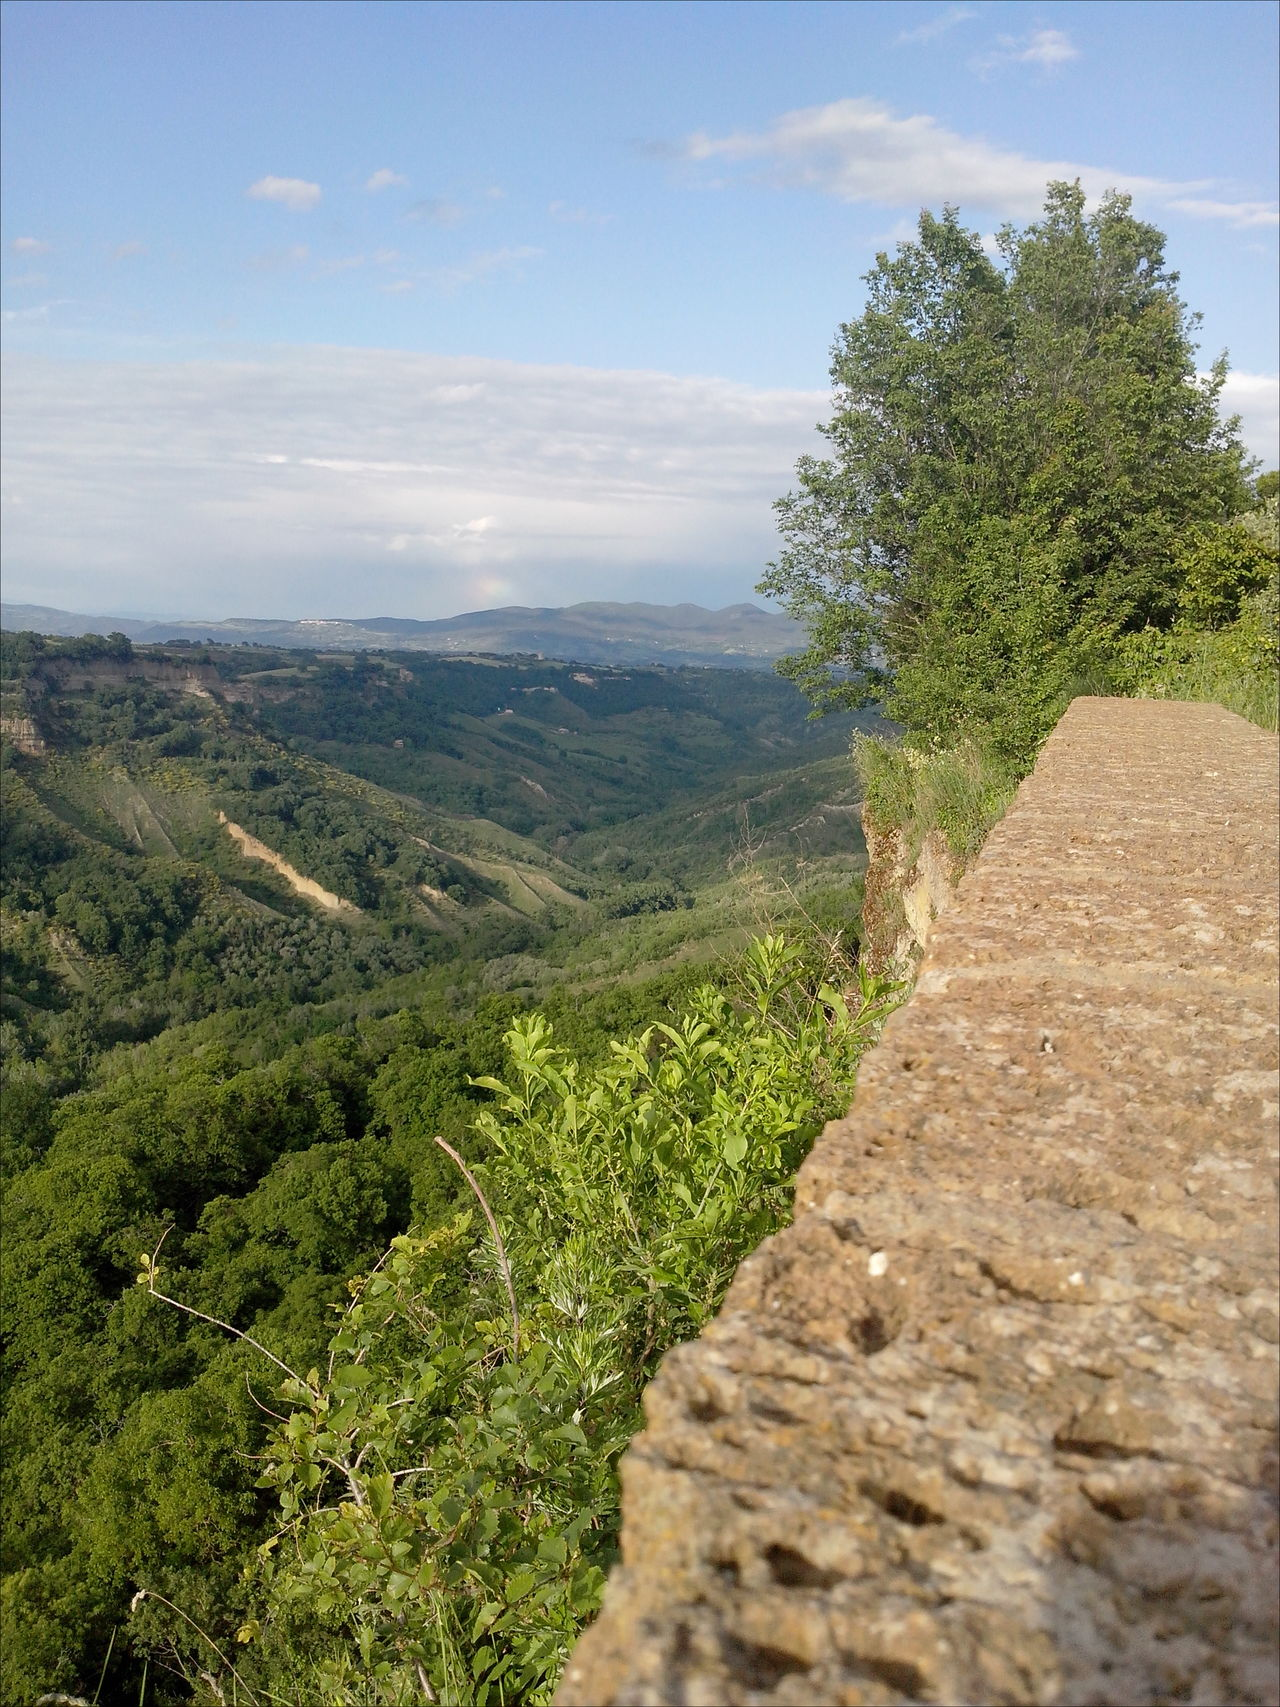 Beauty In Nature Blue Sky Civita Di Bagnoregio Cloudy Sky Grass Green Color Horizon Over Land Landscape Mountain The City That Is Dying Tree Tuff Tufo Valley View World Monuments Watch